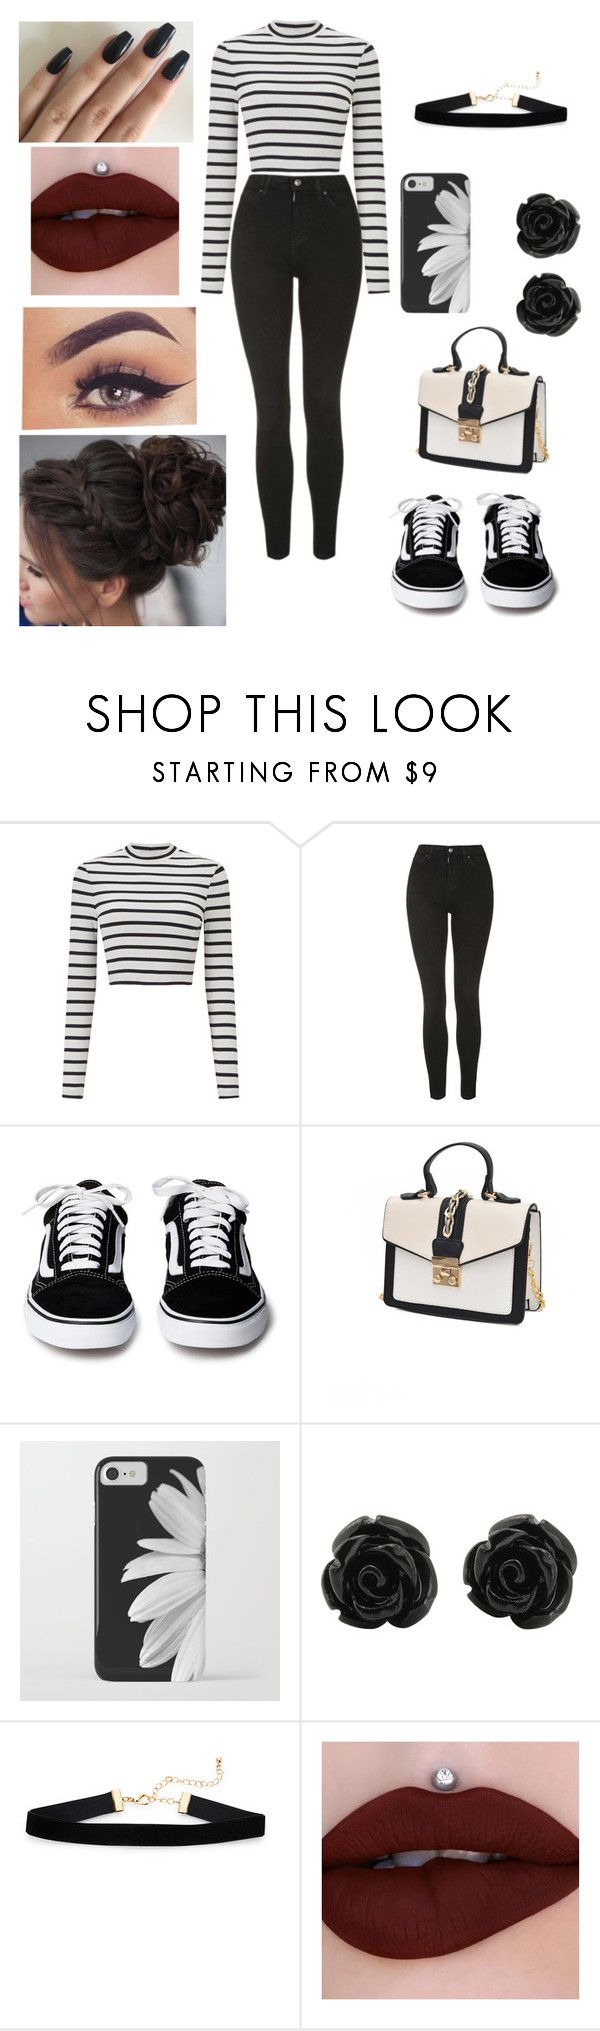 """Untitled #365"" by shuneciacooper ❤ liked on Polyvore featuring Miss Selfridge and Topshop"